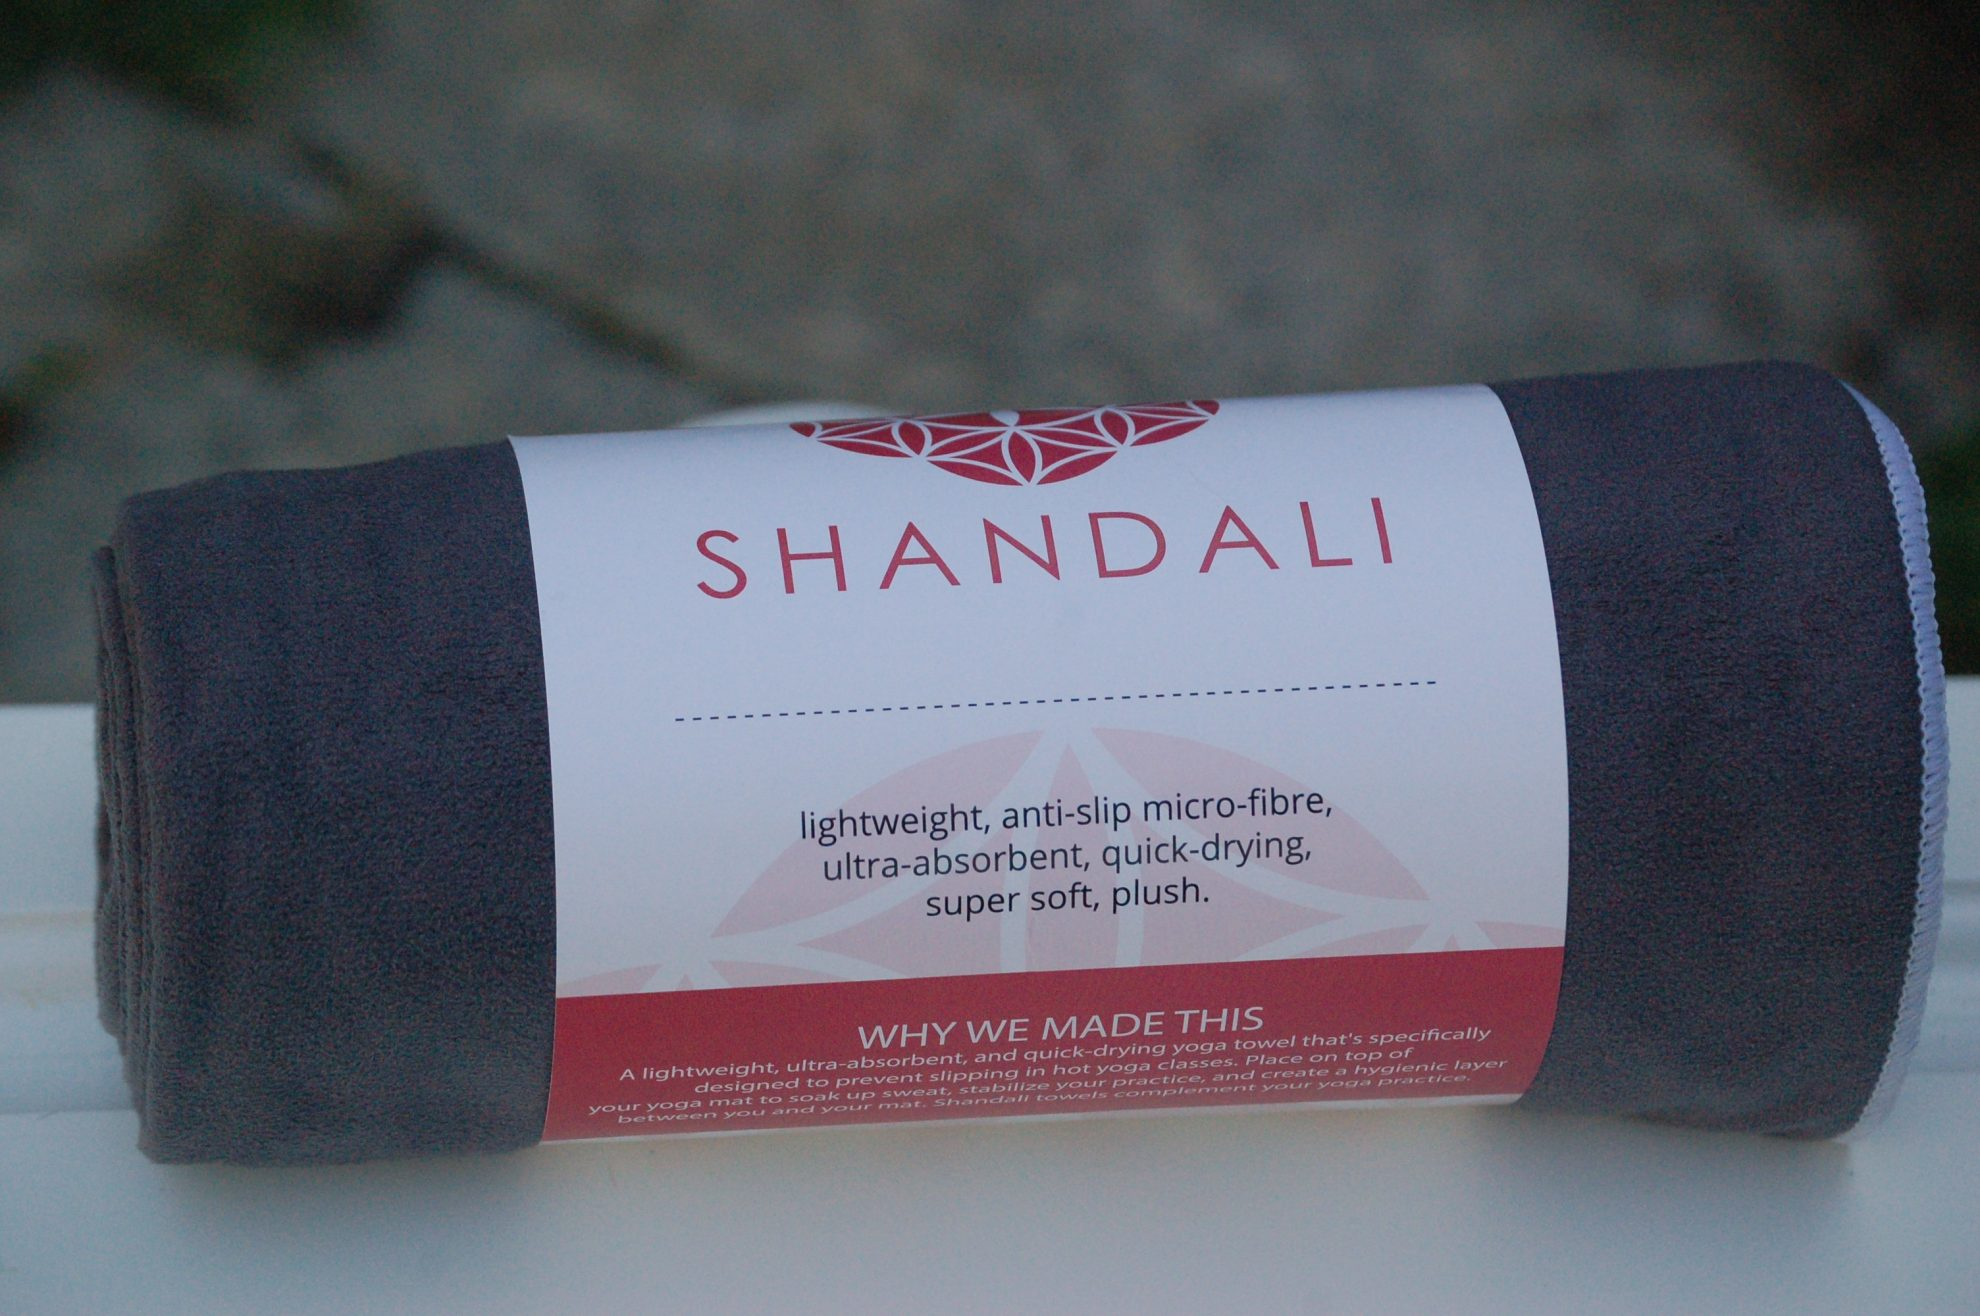 Review: Shandali Hot Yoga Towel